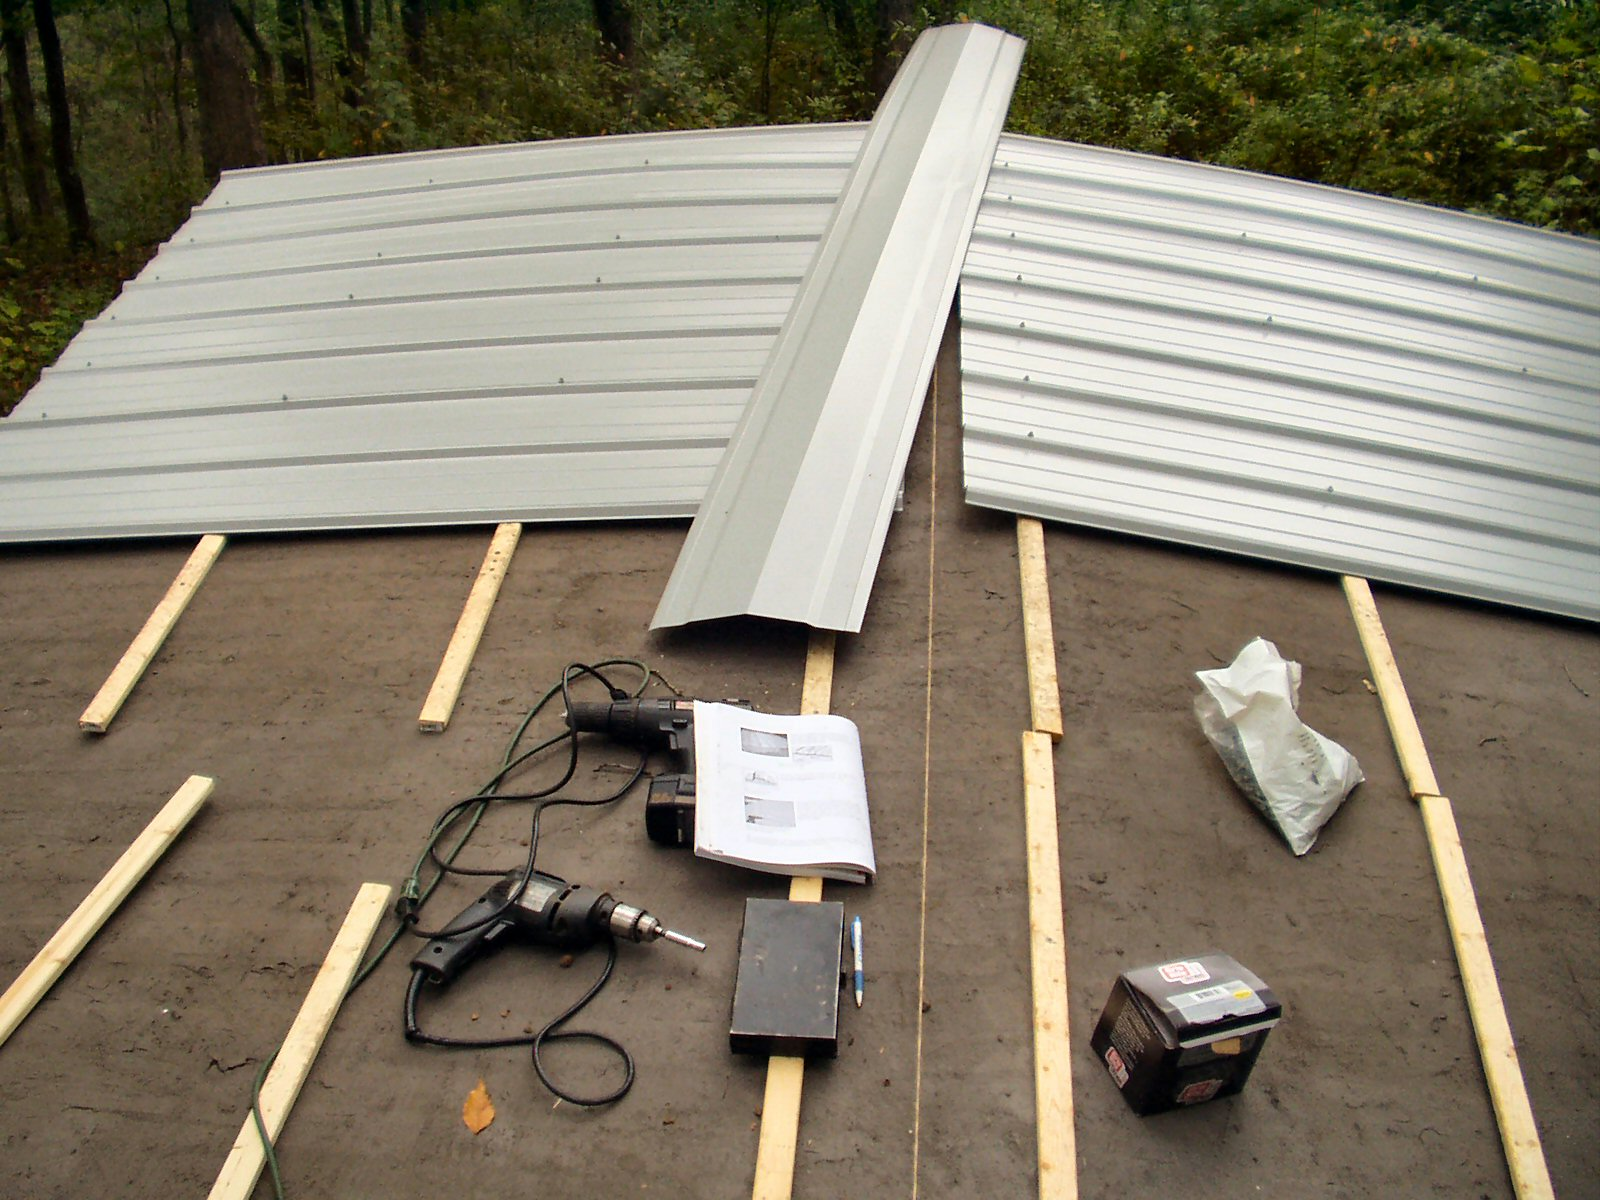 How To Put Rubber Roof On Mobile Home Best Image Voixmag Com